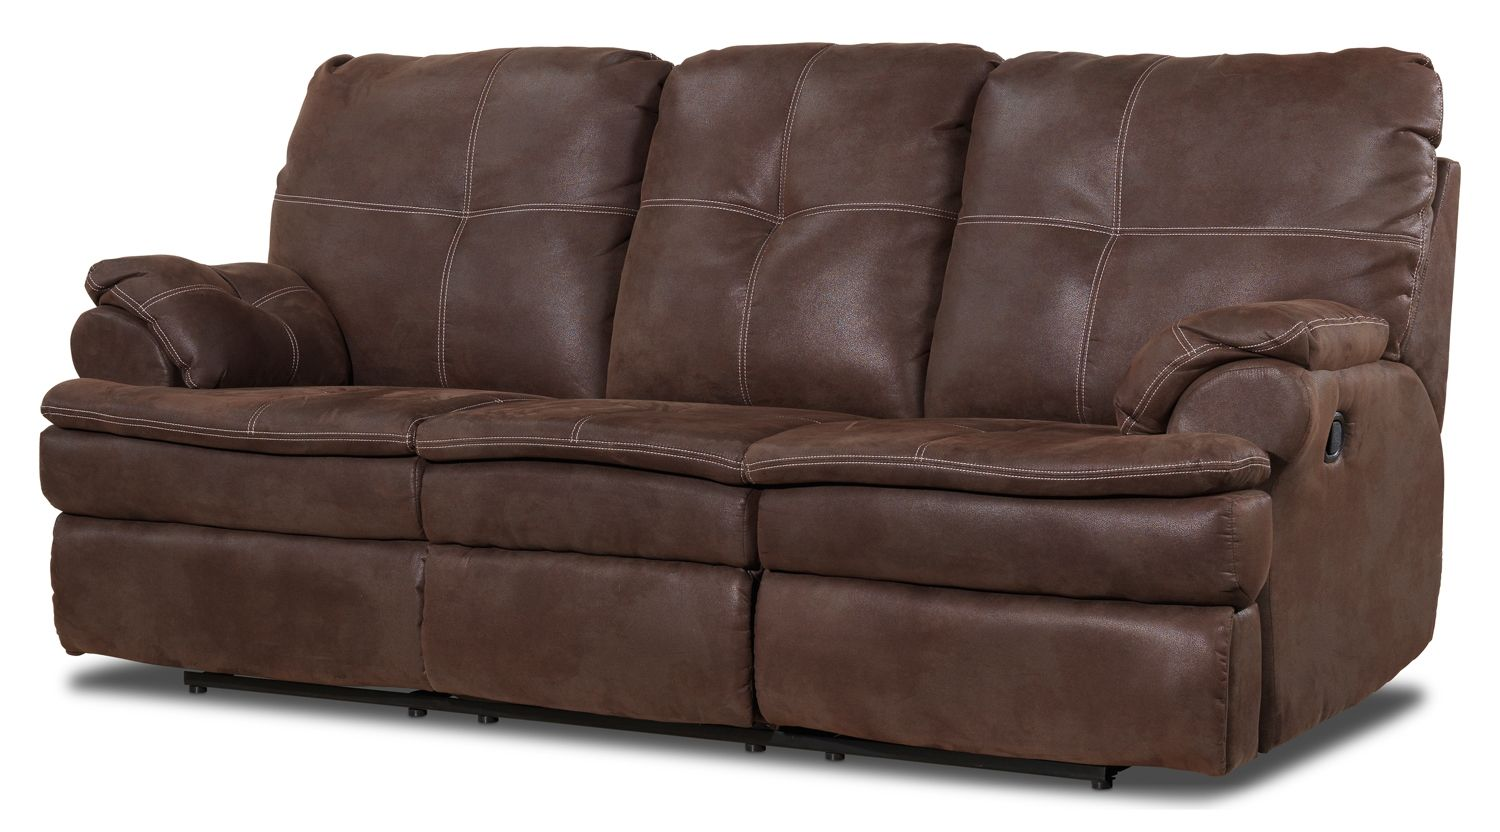 Leon S Leather Recliner Sofa Www Resnooze Com